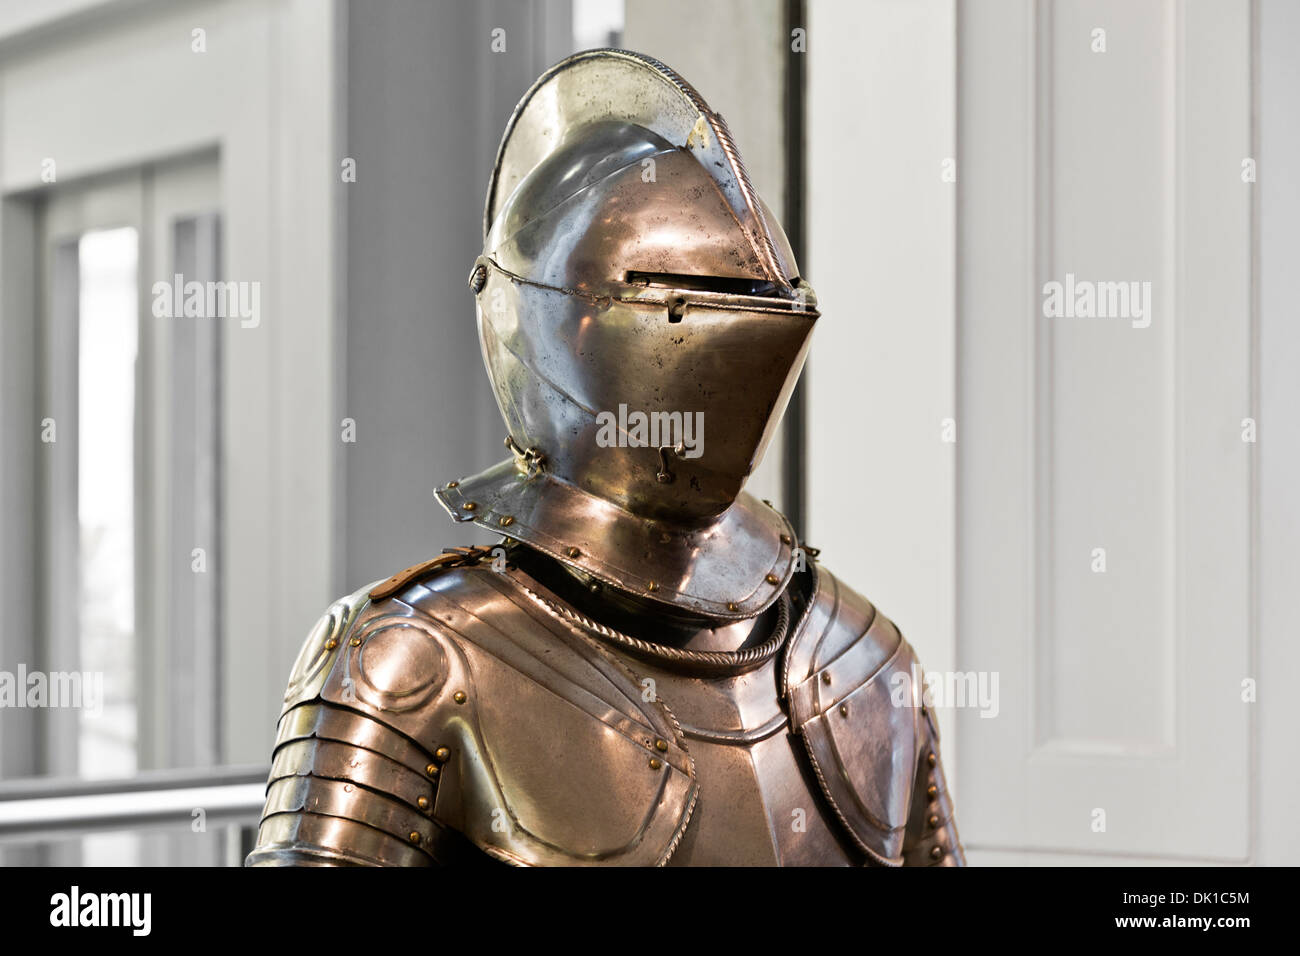 Real knight armor